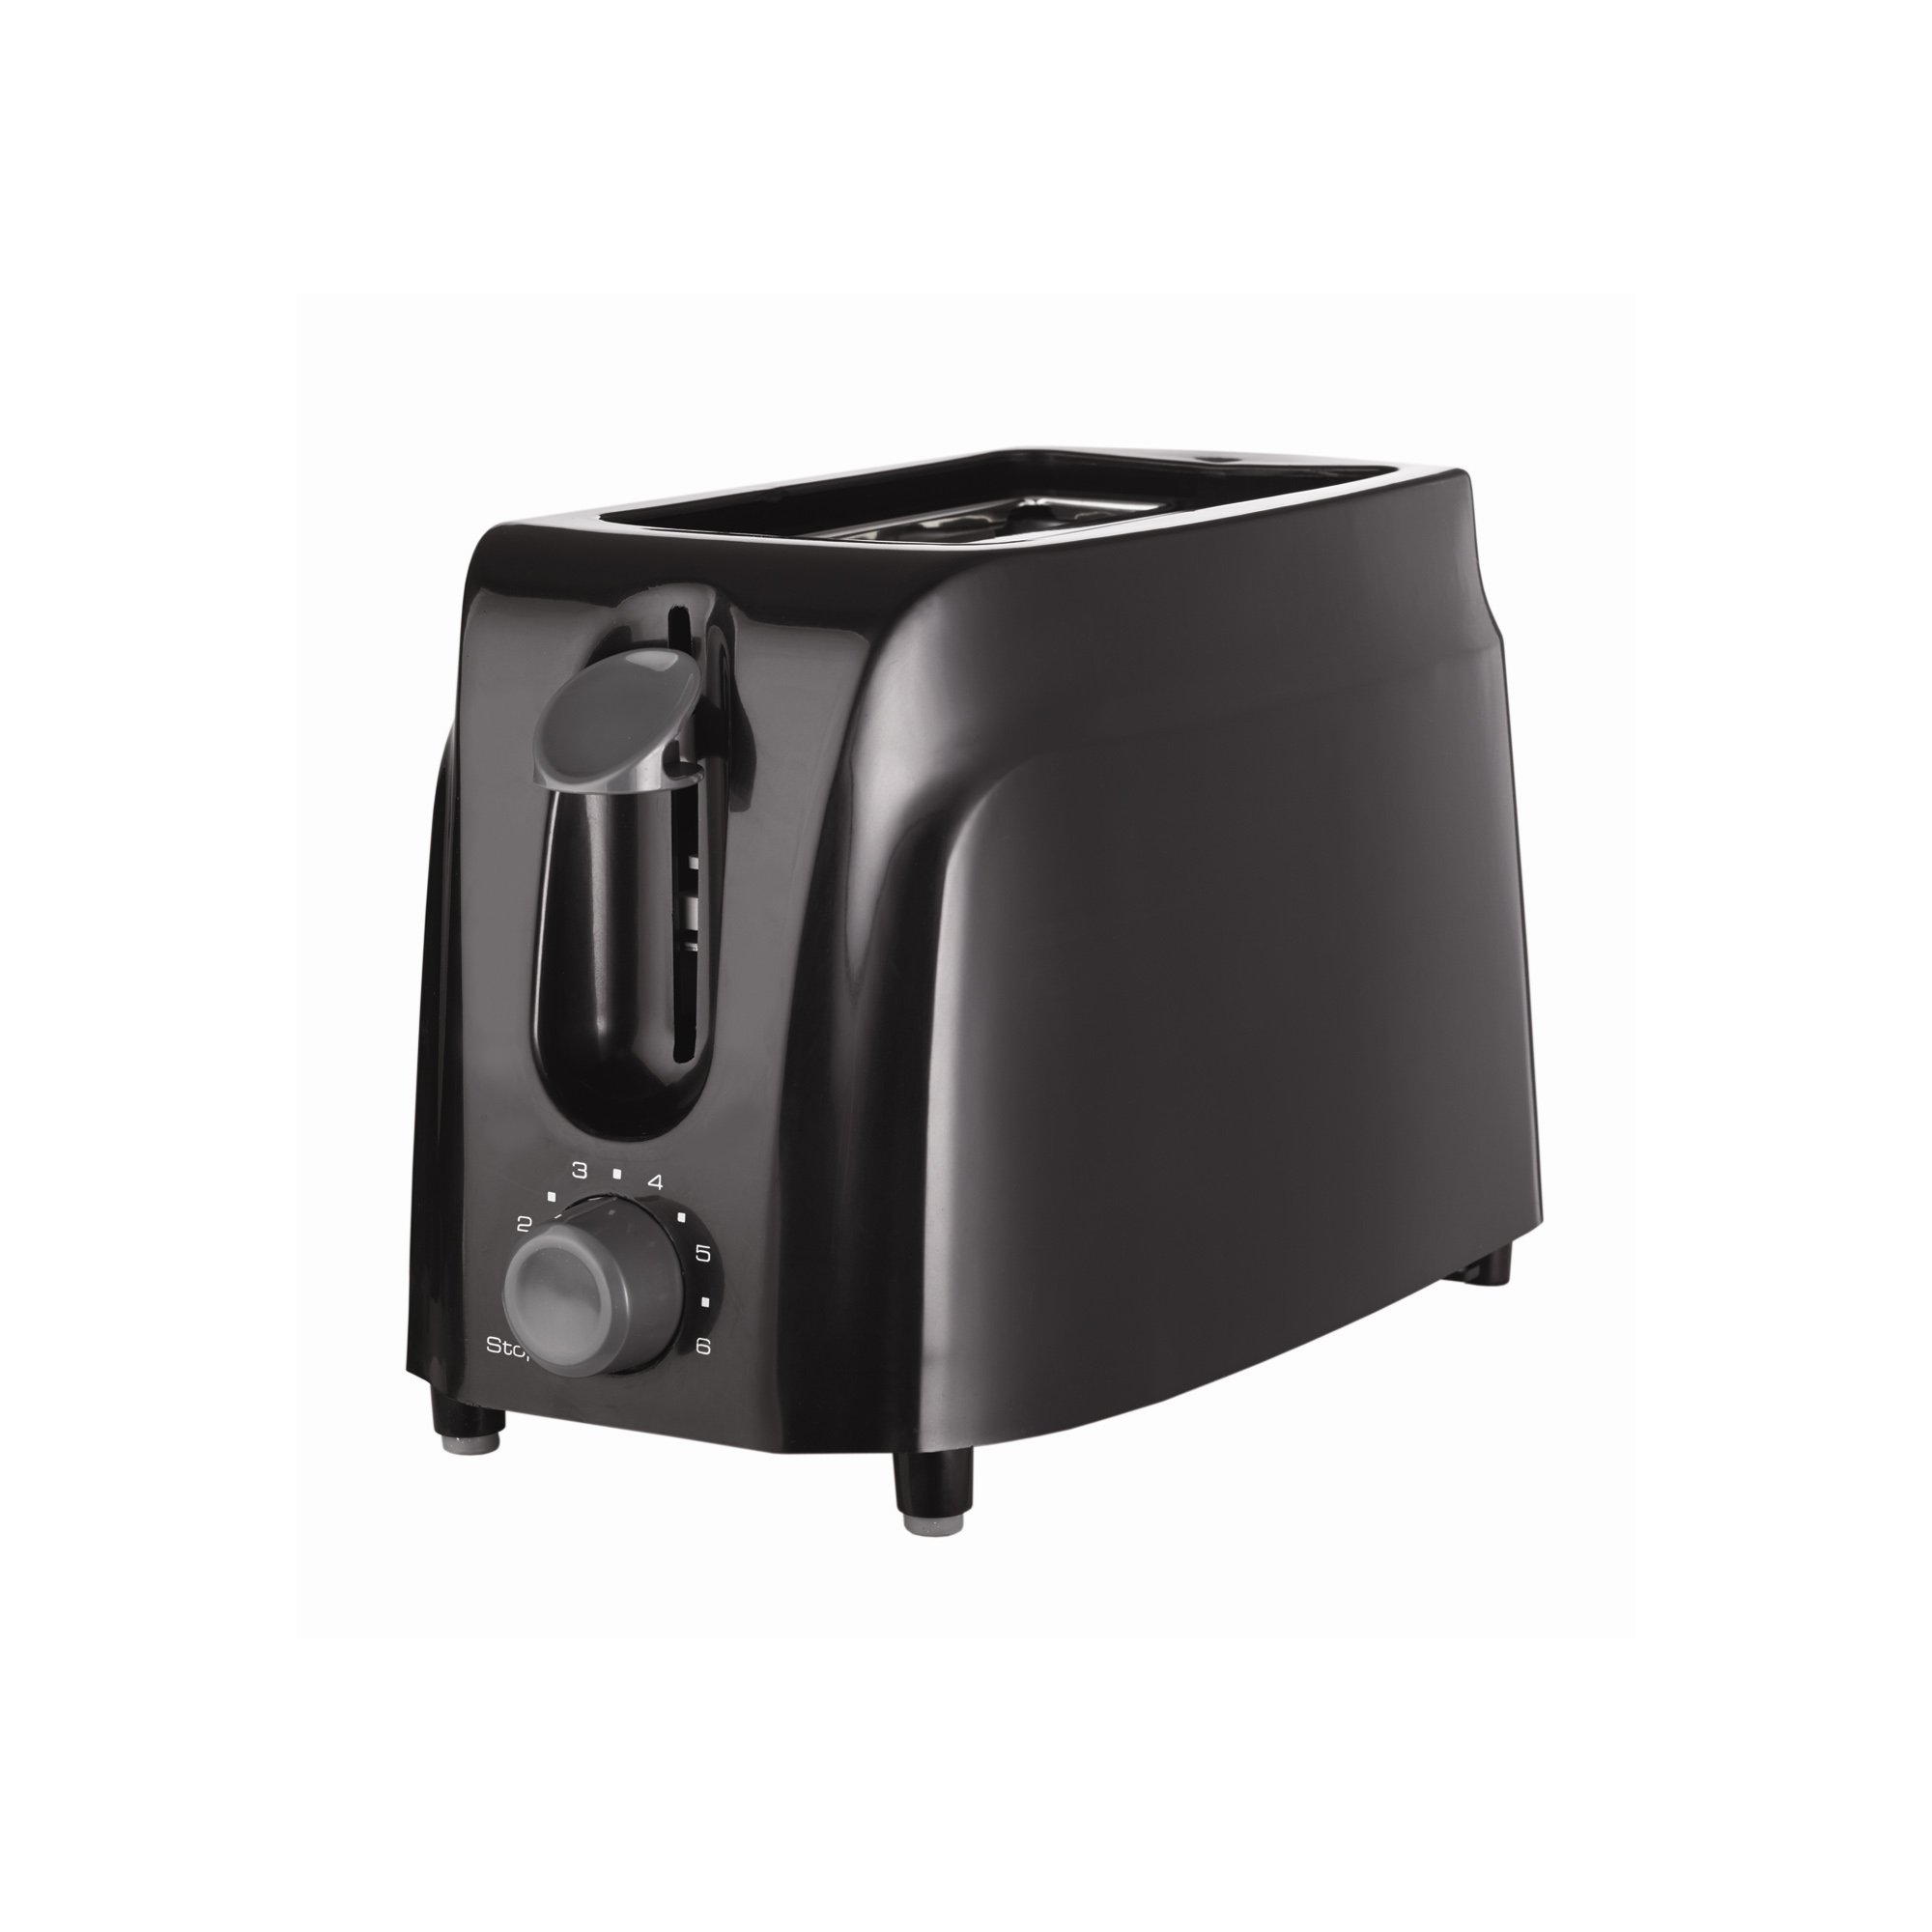 black file touch ovens courant cool br name toasters slice toaster